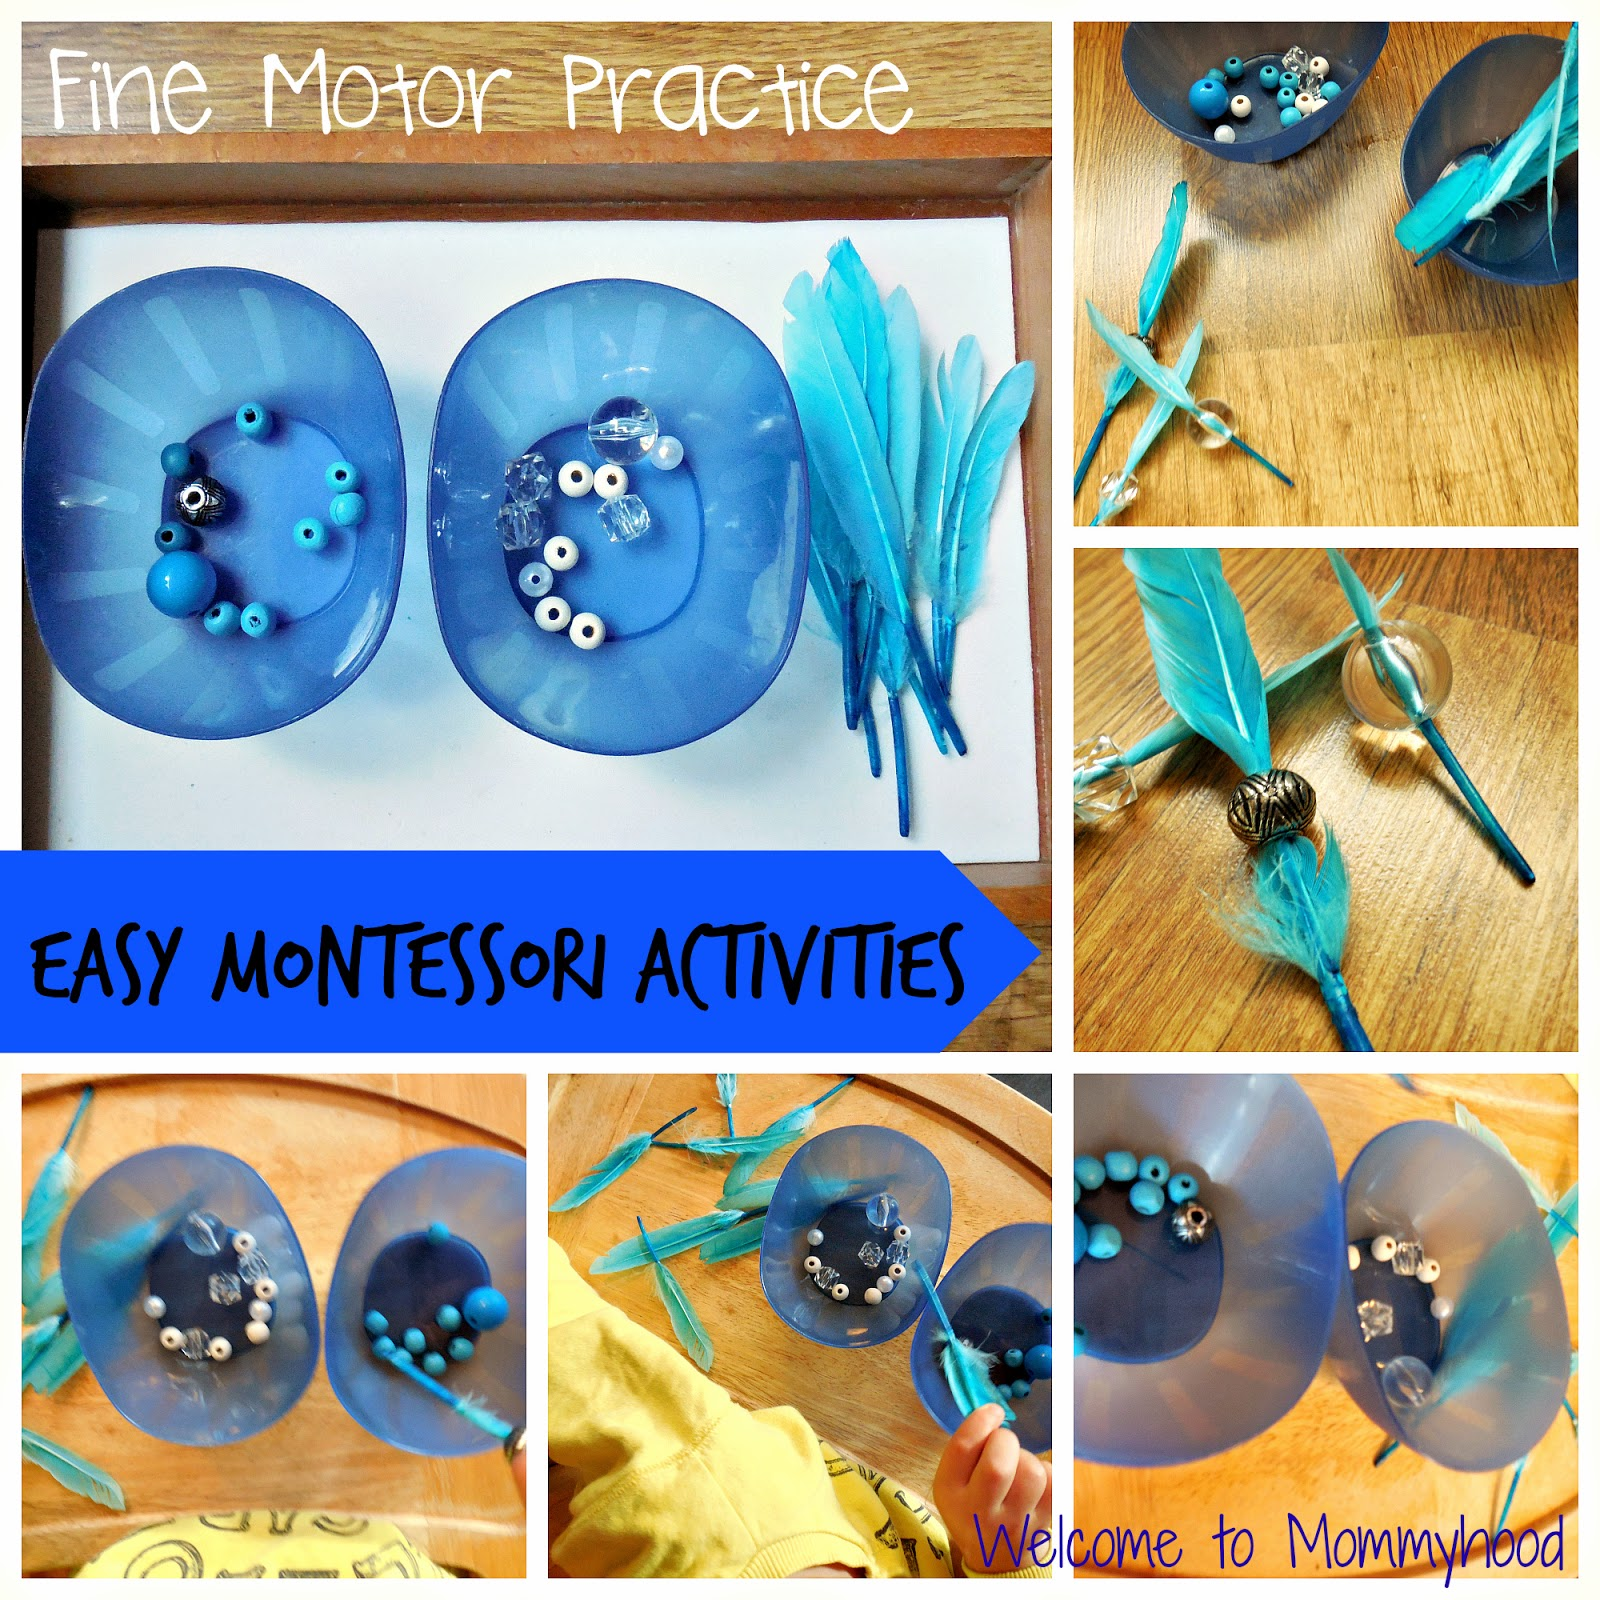 Fine motor activities for toddlers by Welcome to Mommyhood #finemotoractivitiesfortoddlers, #finemotoractivities, #montessori